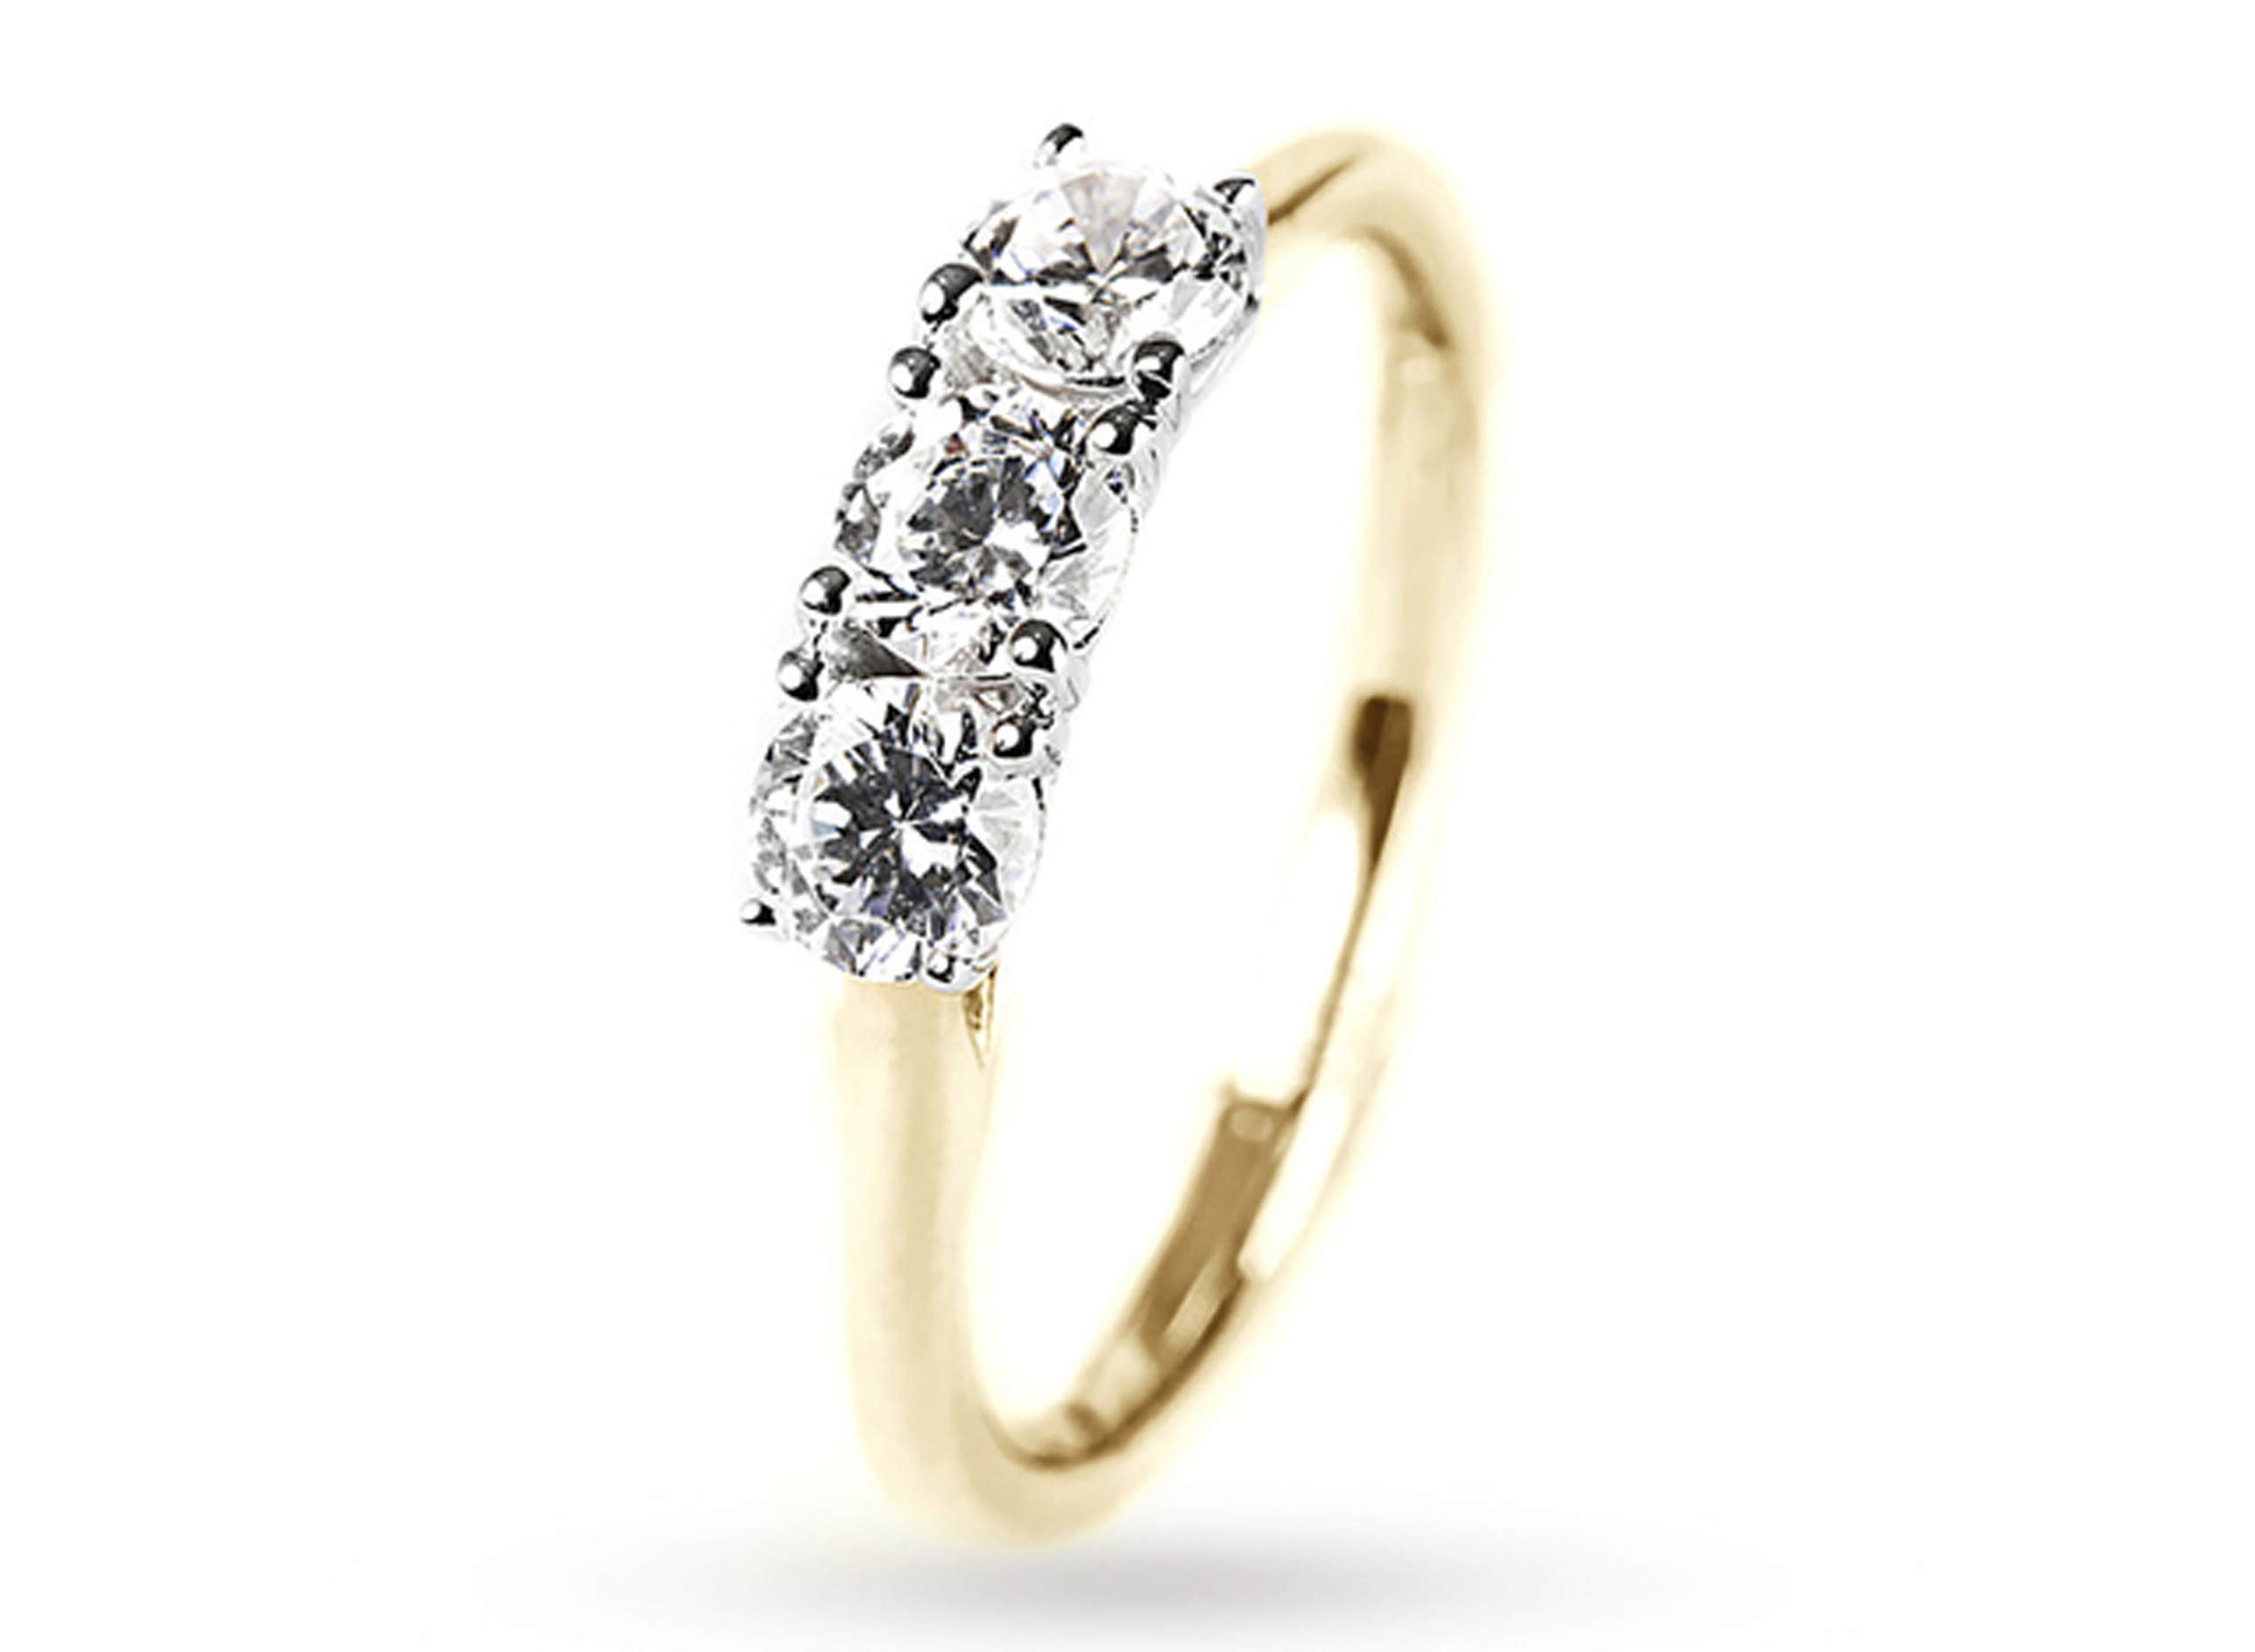 rings engagement j sale for deco white diamond org veg fd gold karat art ring id jewelry carat at